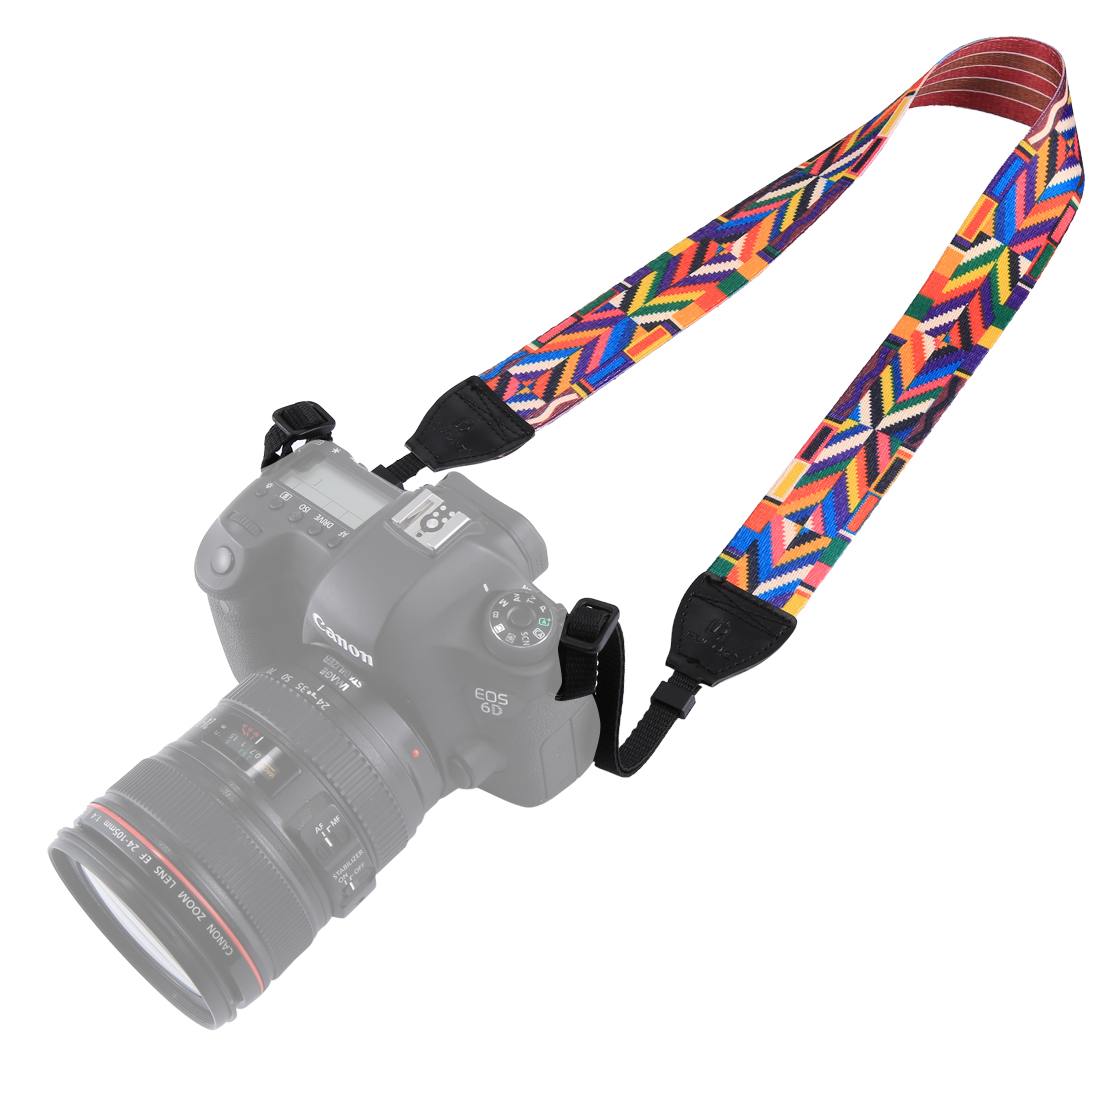 PULUZ PU6008C Retro Ethnic Style Multi-color Series Shoulder Neck Strap for SLR DSLR Cameras